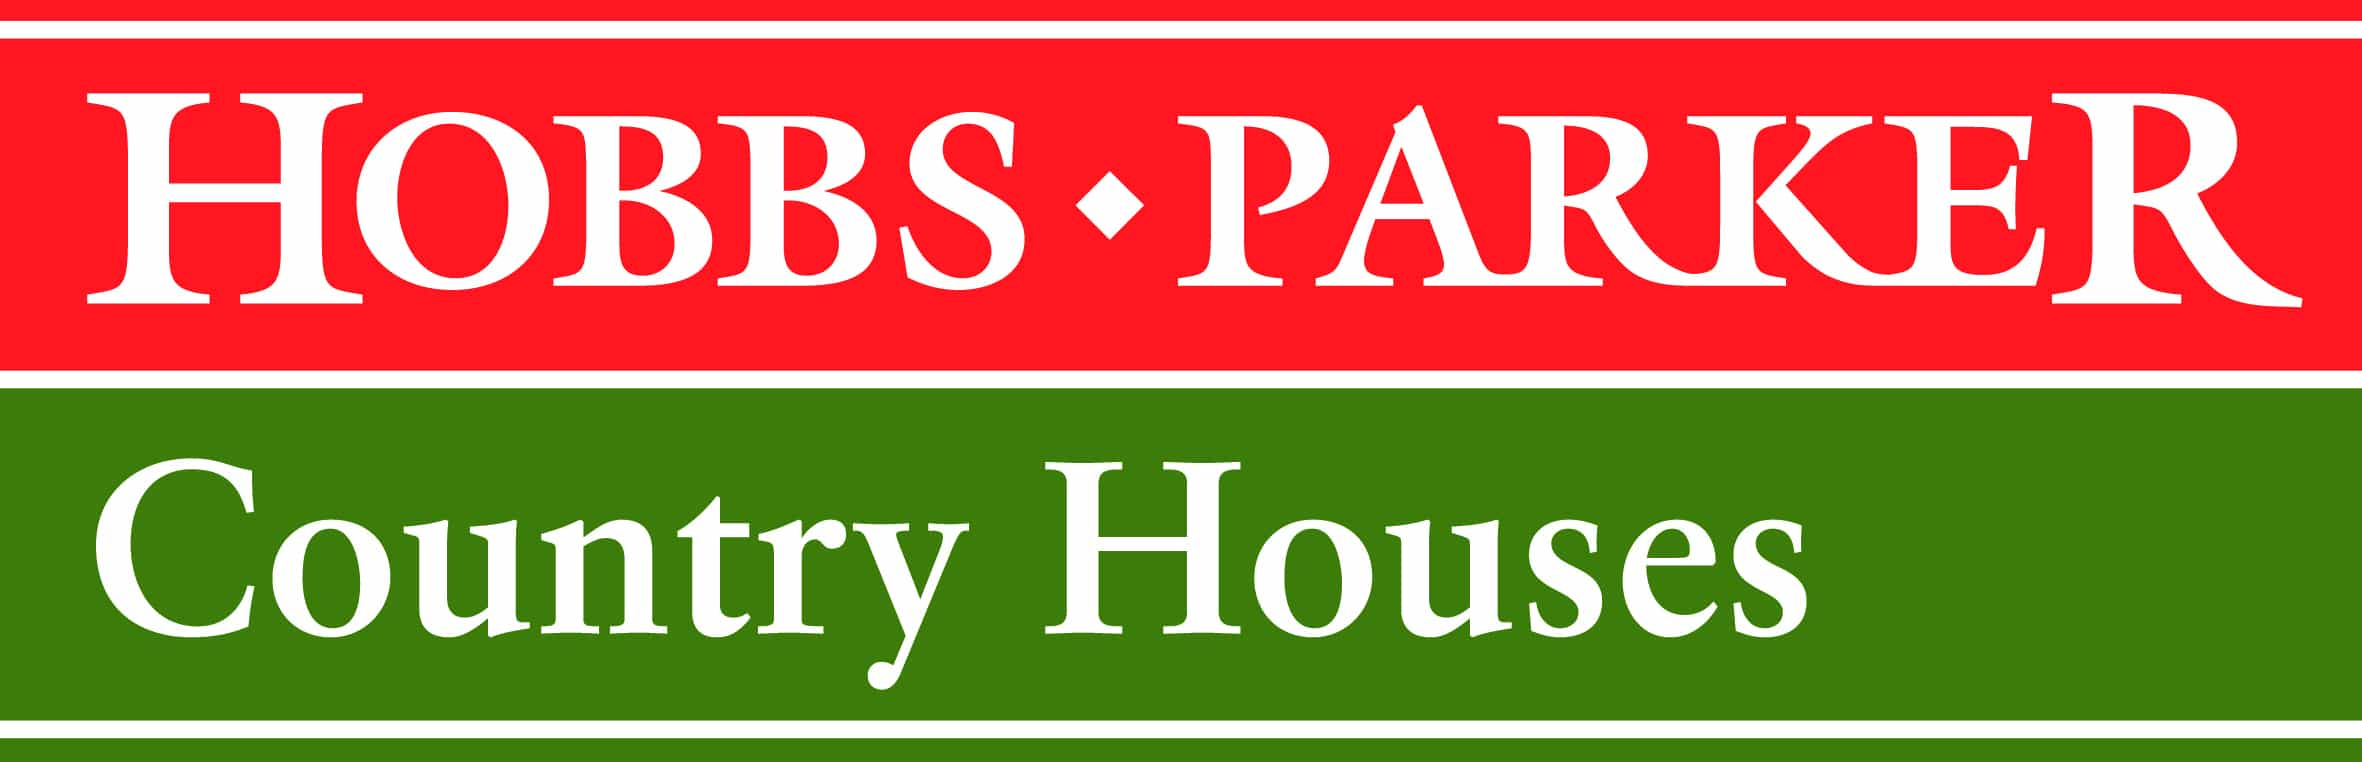 Hobbs Parker Country Houses Logo